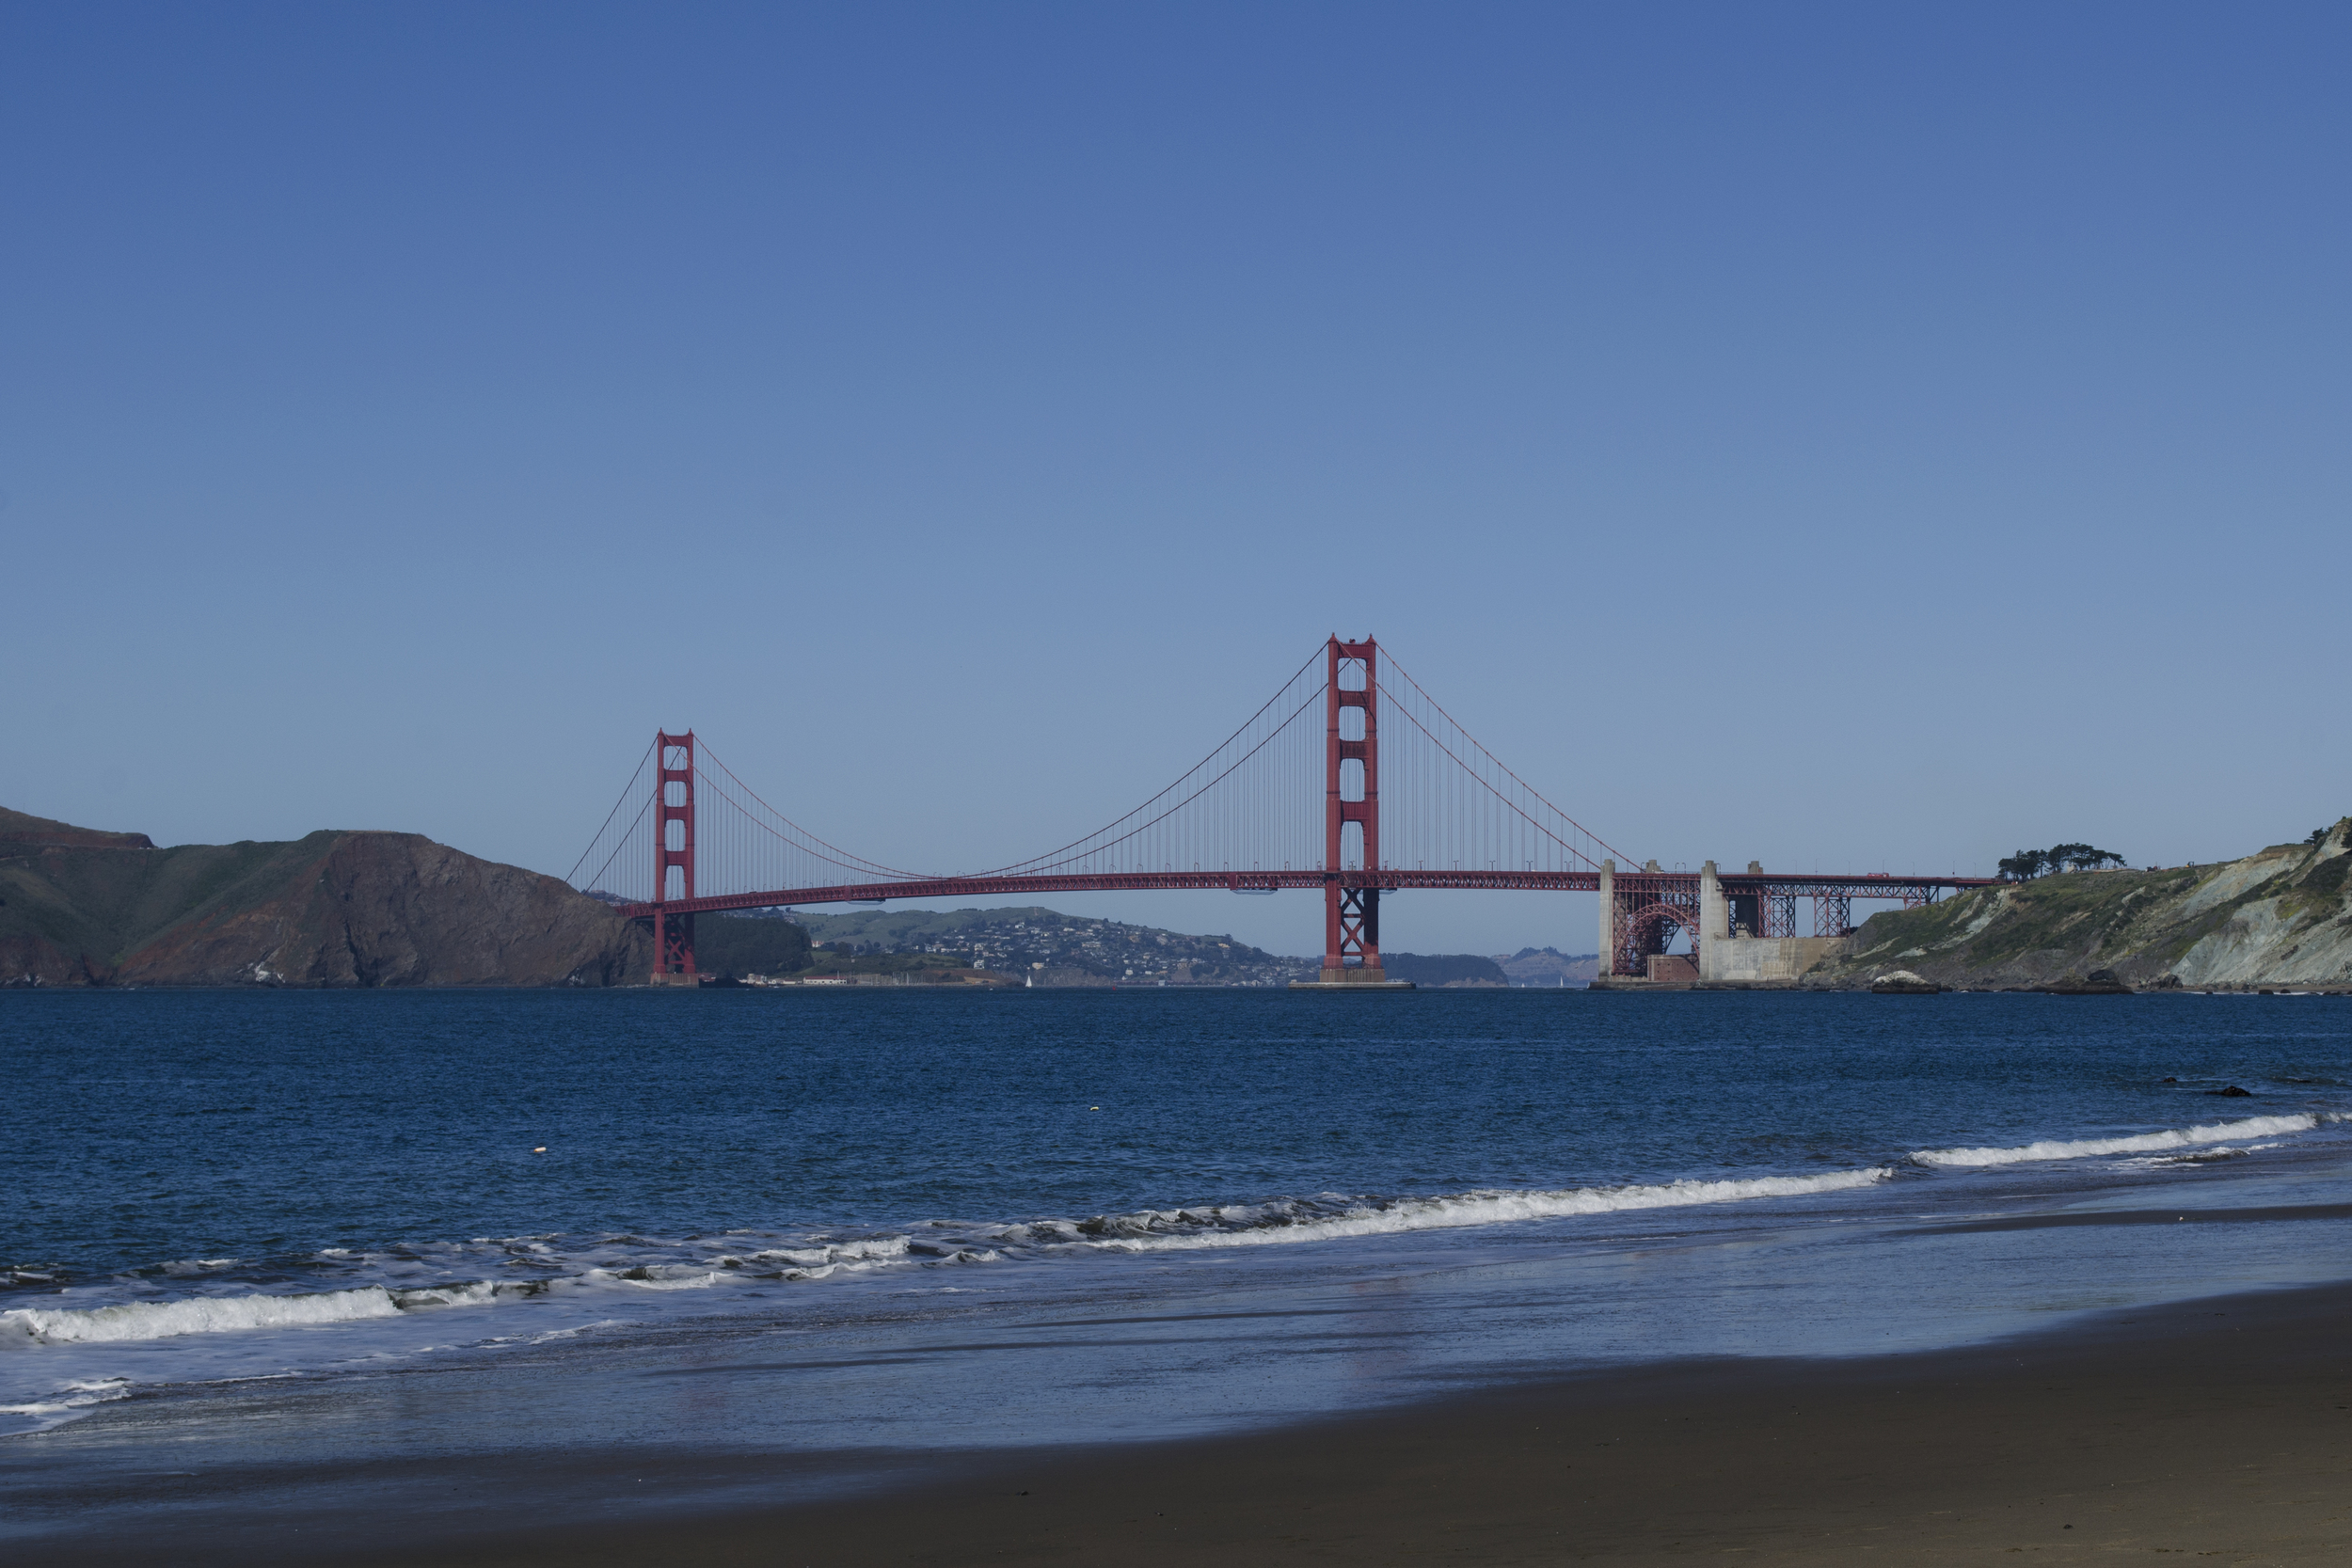 The Golden Gate Bridge as seen from China Beach